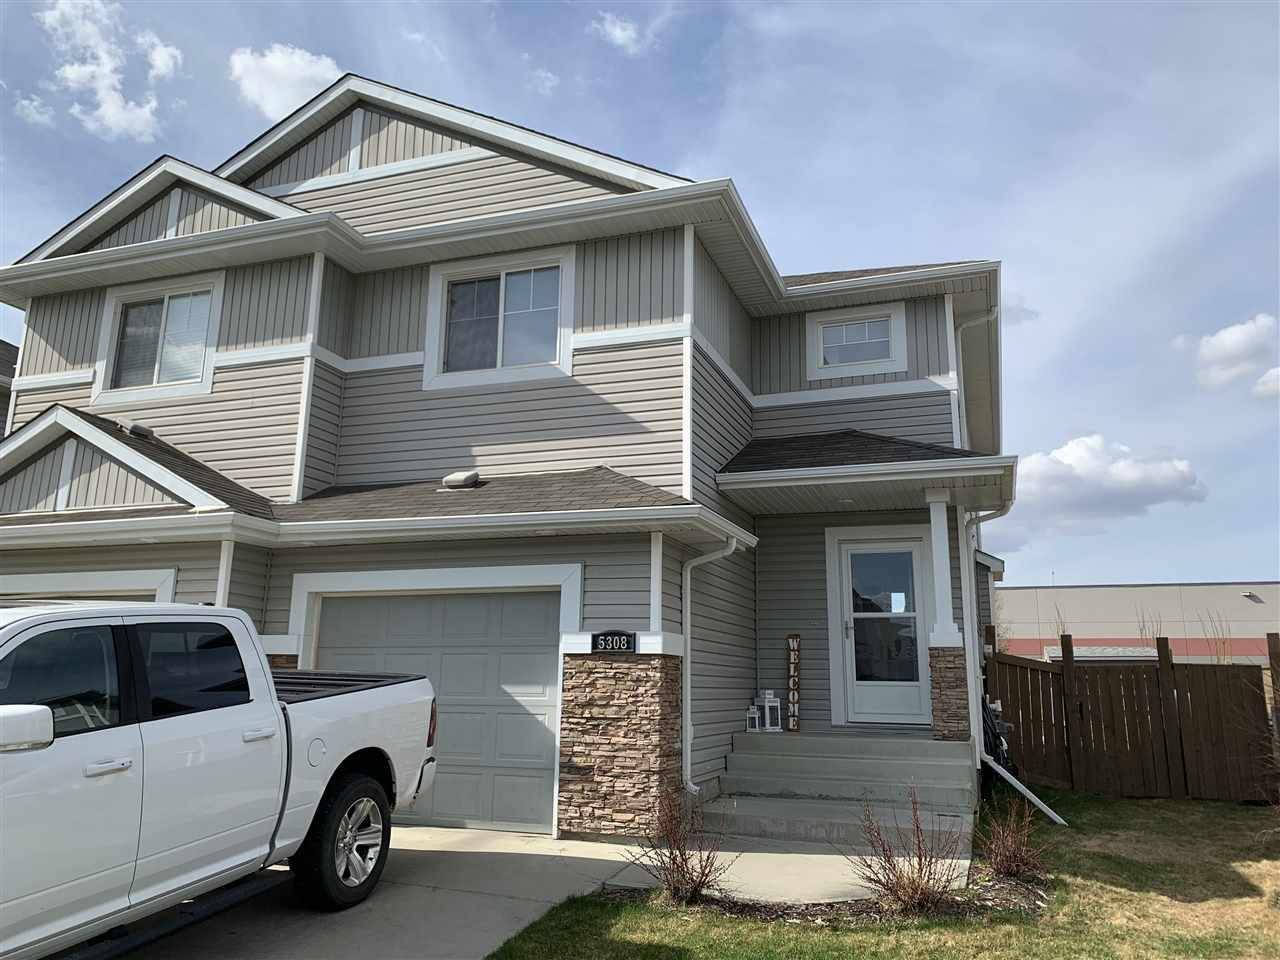 Townhouse for sale at 5308 165 Ave Nw Edmonton Alberta - MLS: E4187378